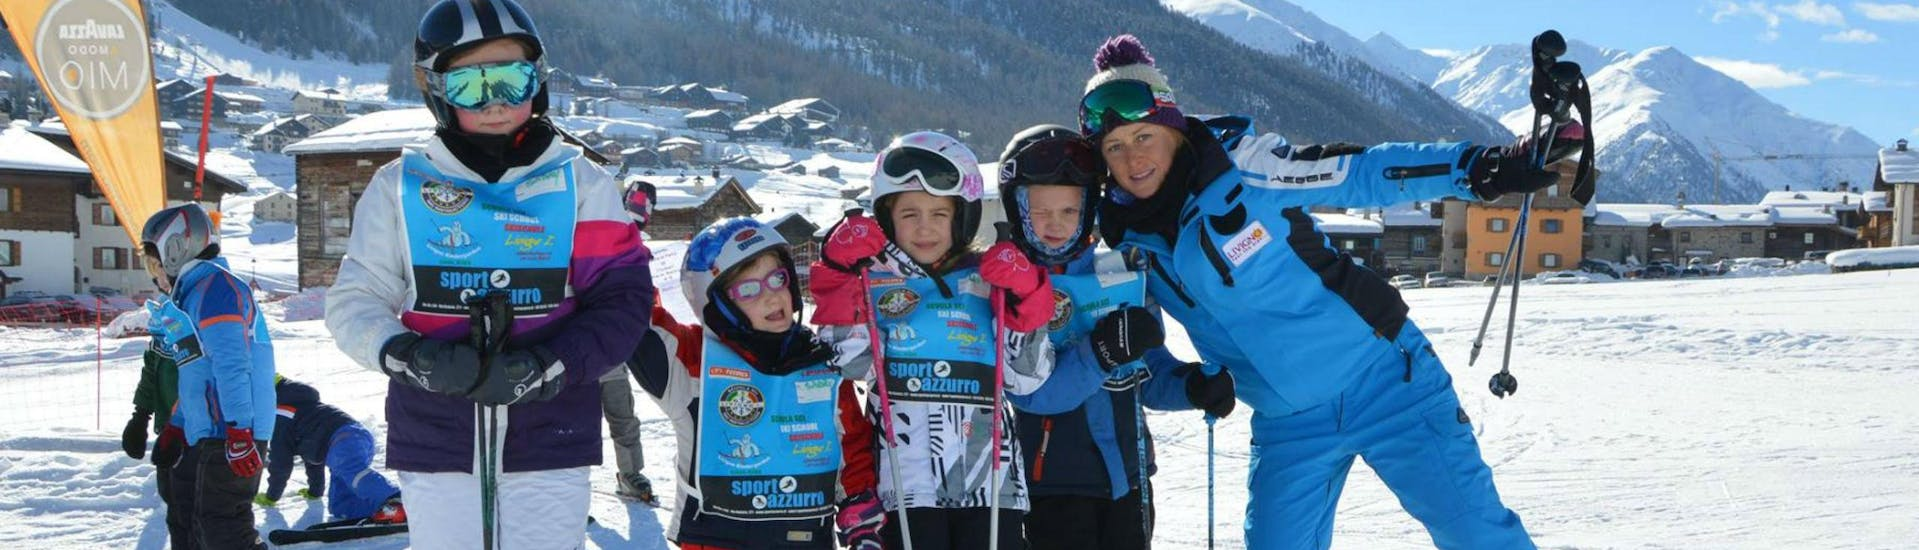 "A group of children is enjoying their Kids Ski Lessons ""Low Season"" (5-12 y.) - All Levels together with their instructor from the ski school Scuola di Sci e Snowboard Livigno Italy."